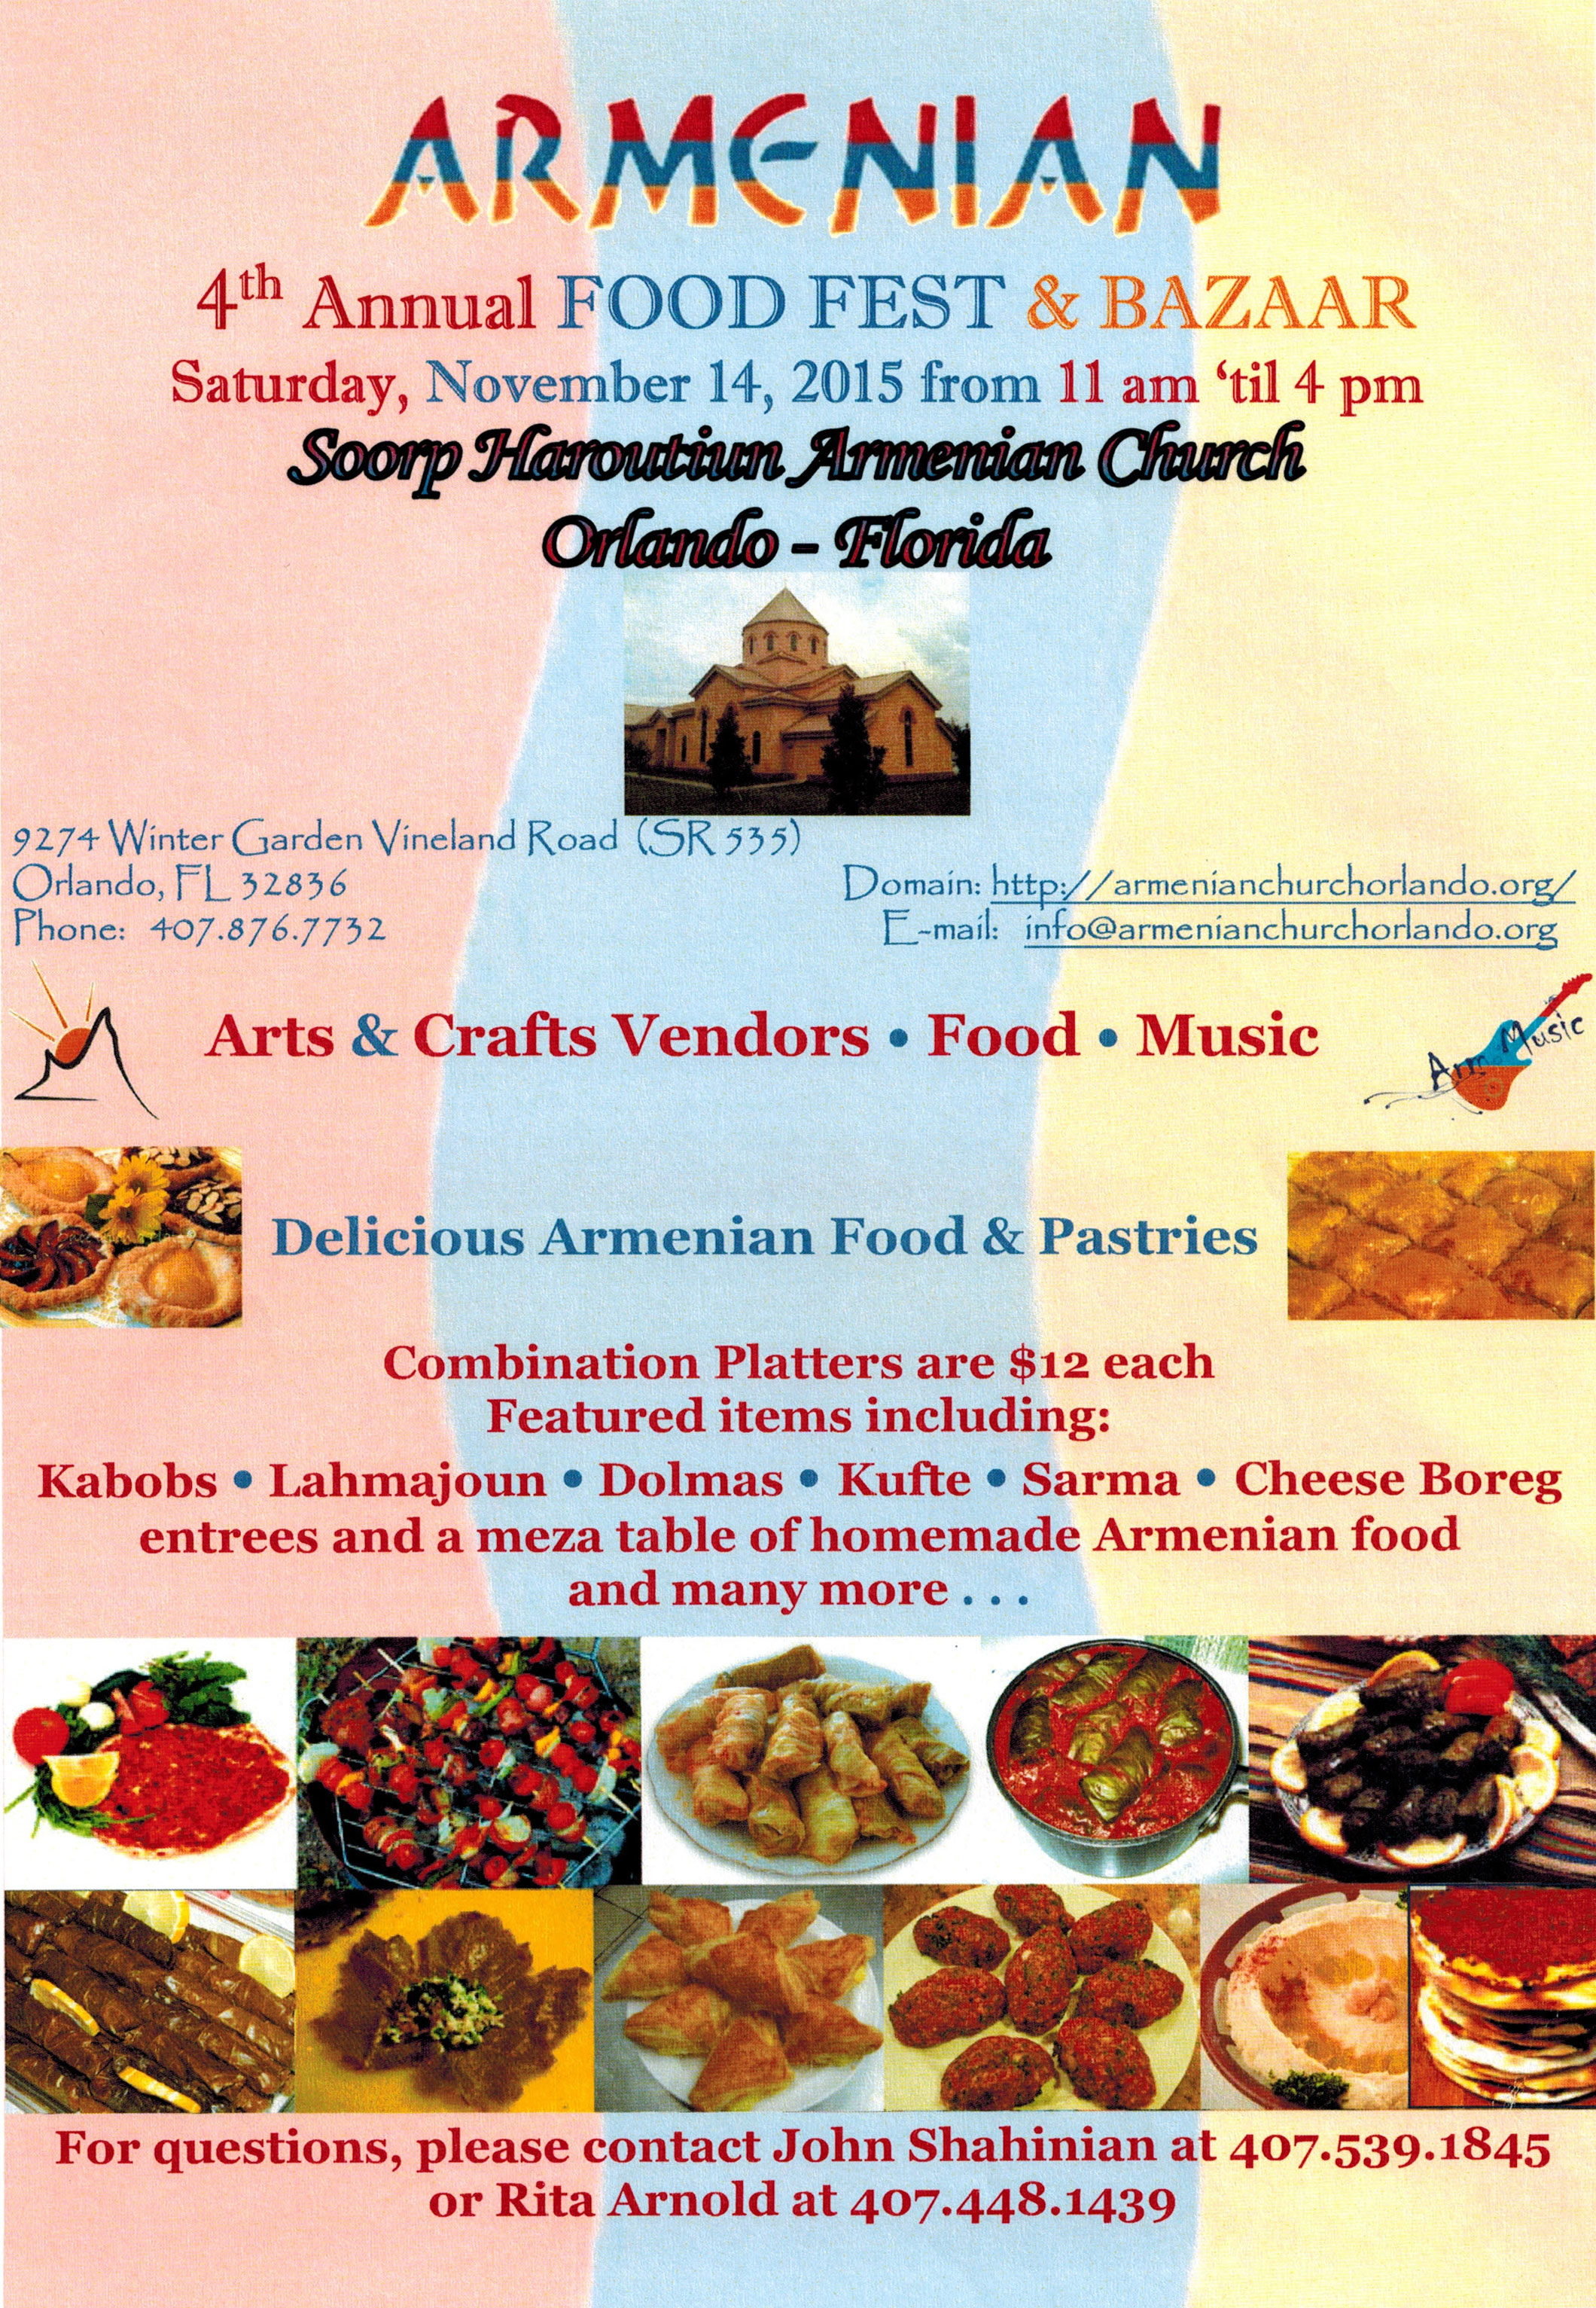 fourth annual armenian food festival coming to orlando florida